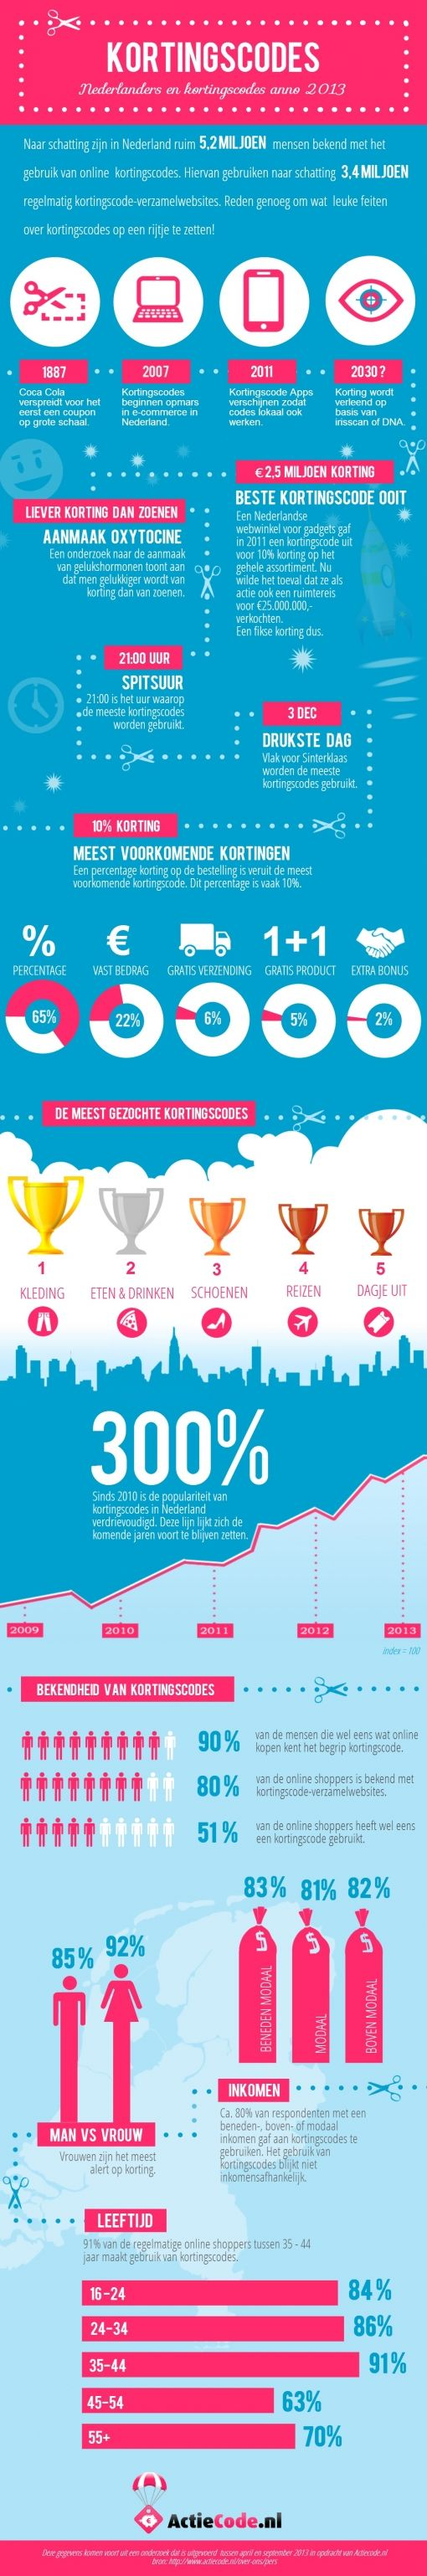 Kortingscodes-anno-2013-infographic1